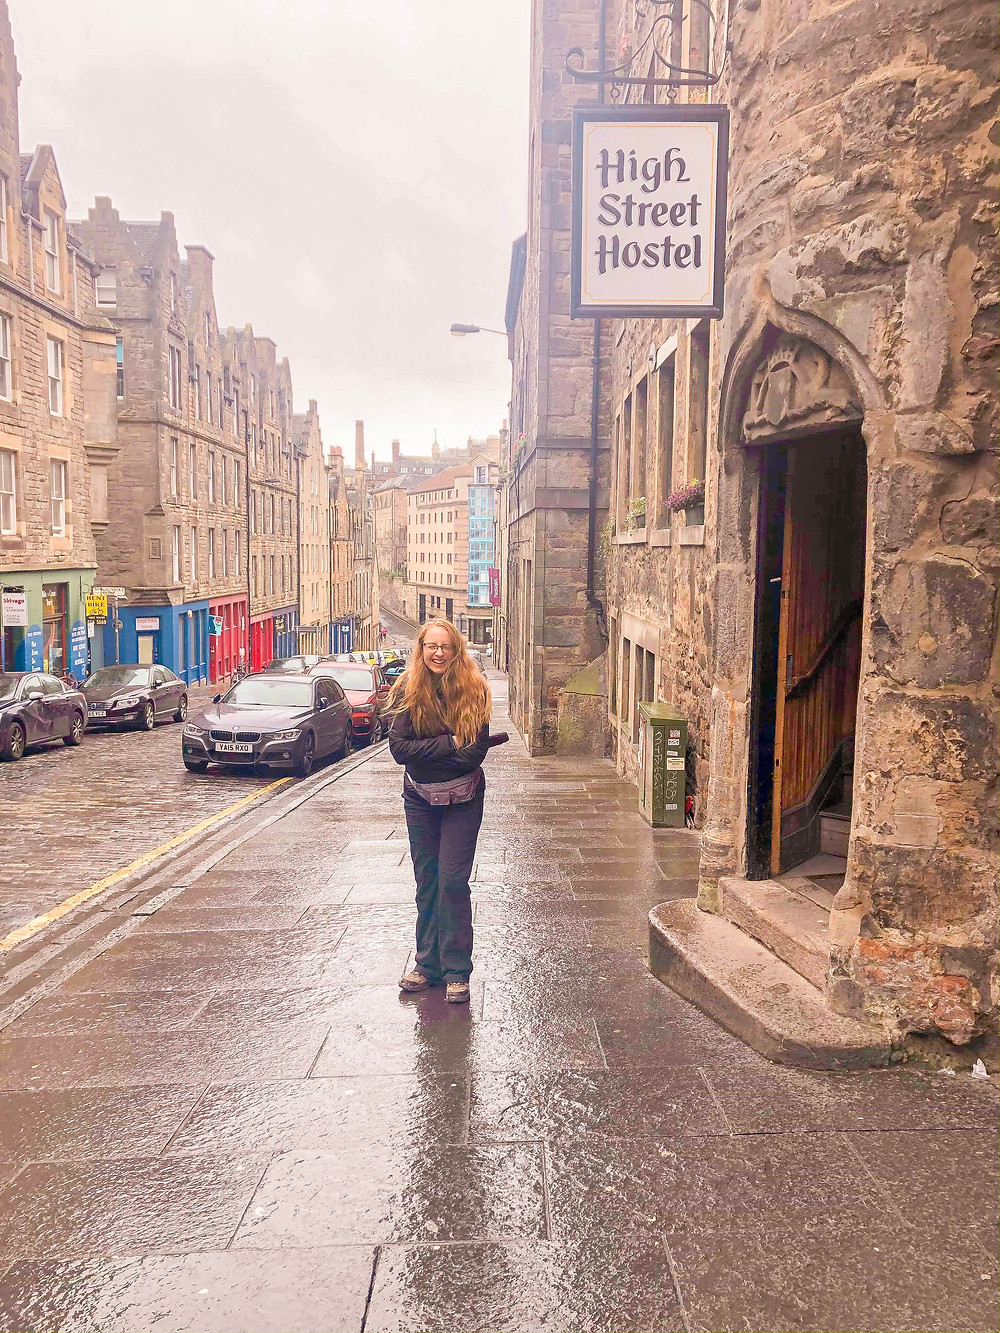 High Street Hostel in Edinburgh